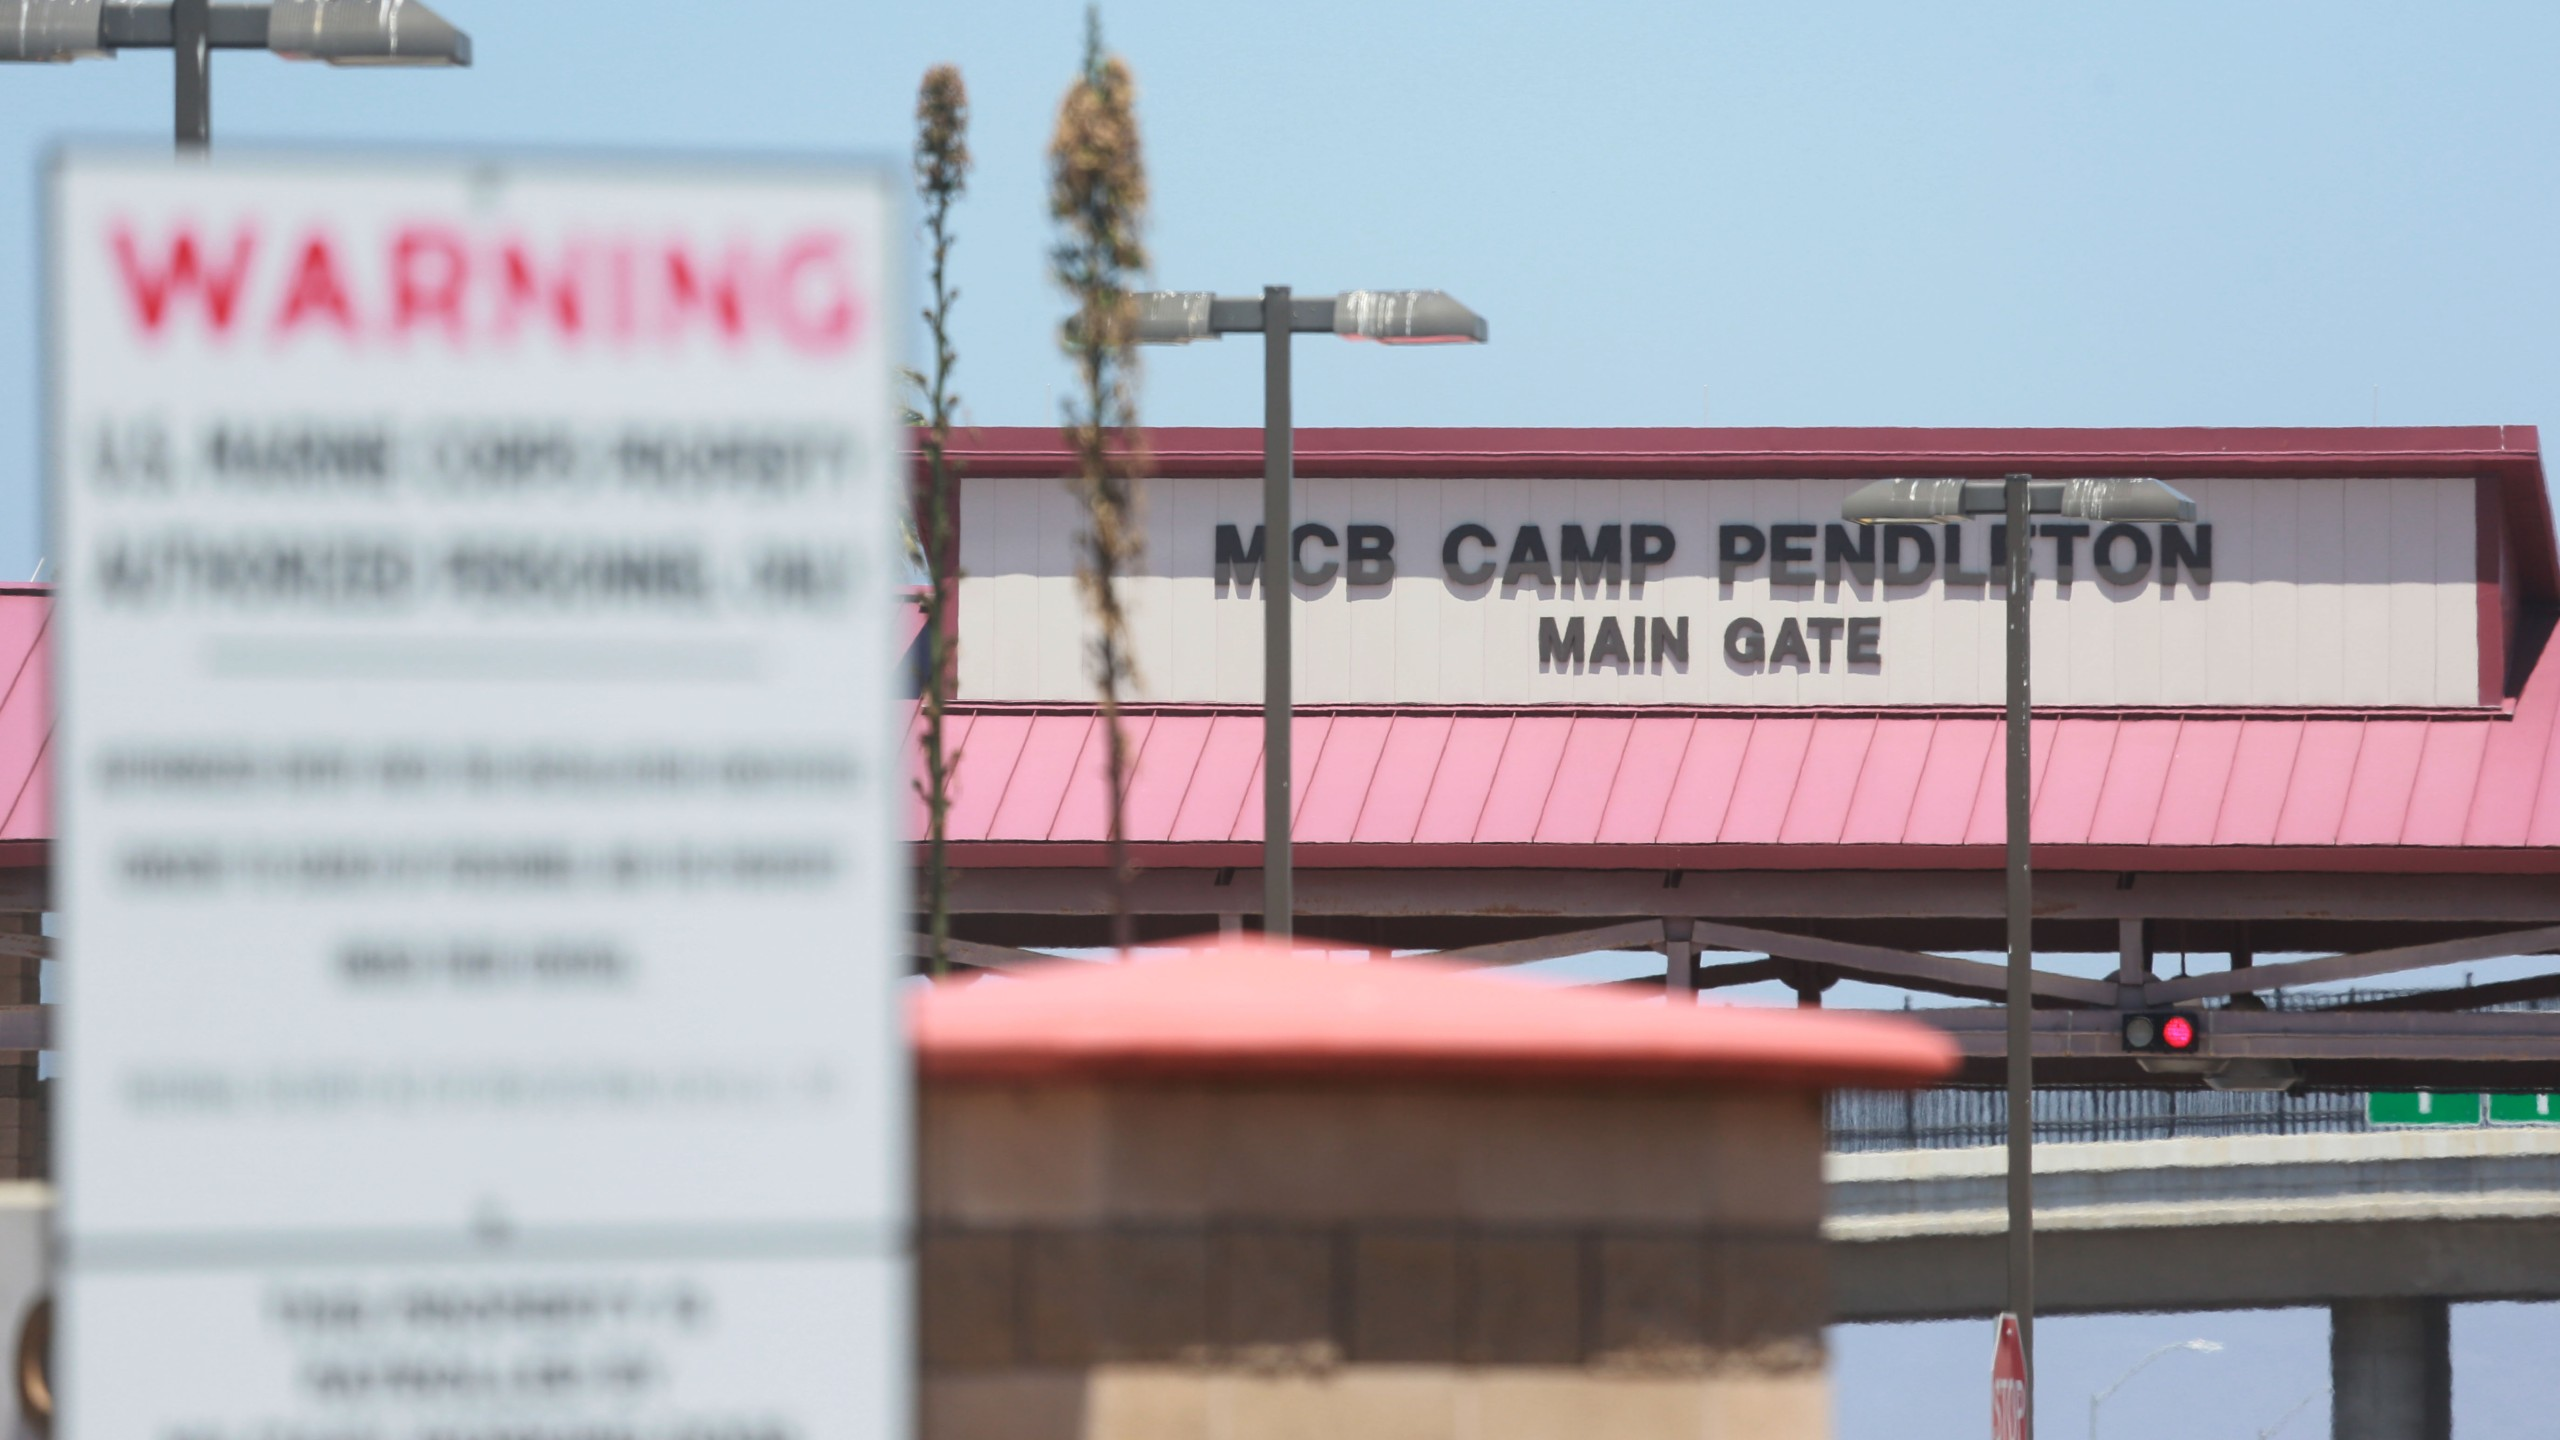 The main entrance to Camp Pendleton in Oceanside is seen on July 26, 2019. (Credit: Sandy Huffaker / Getty Images)